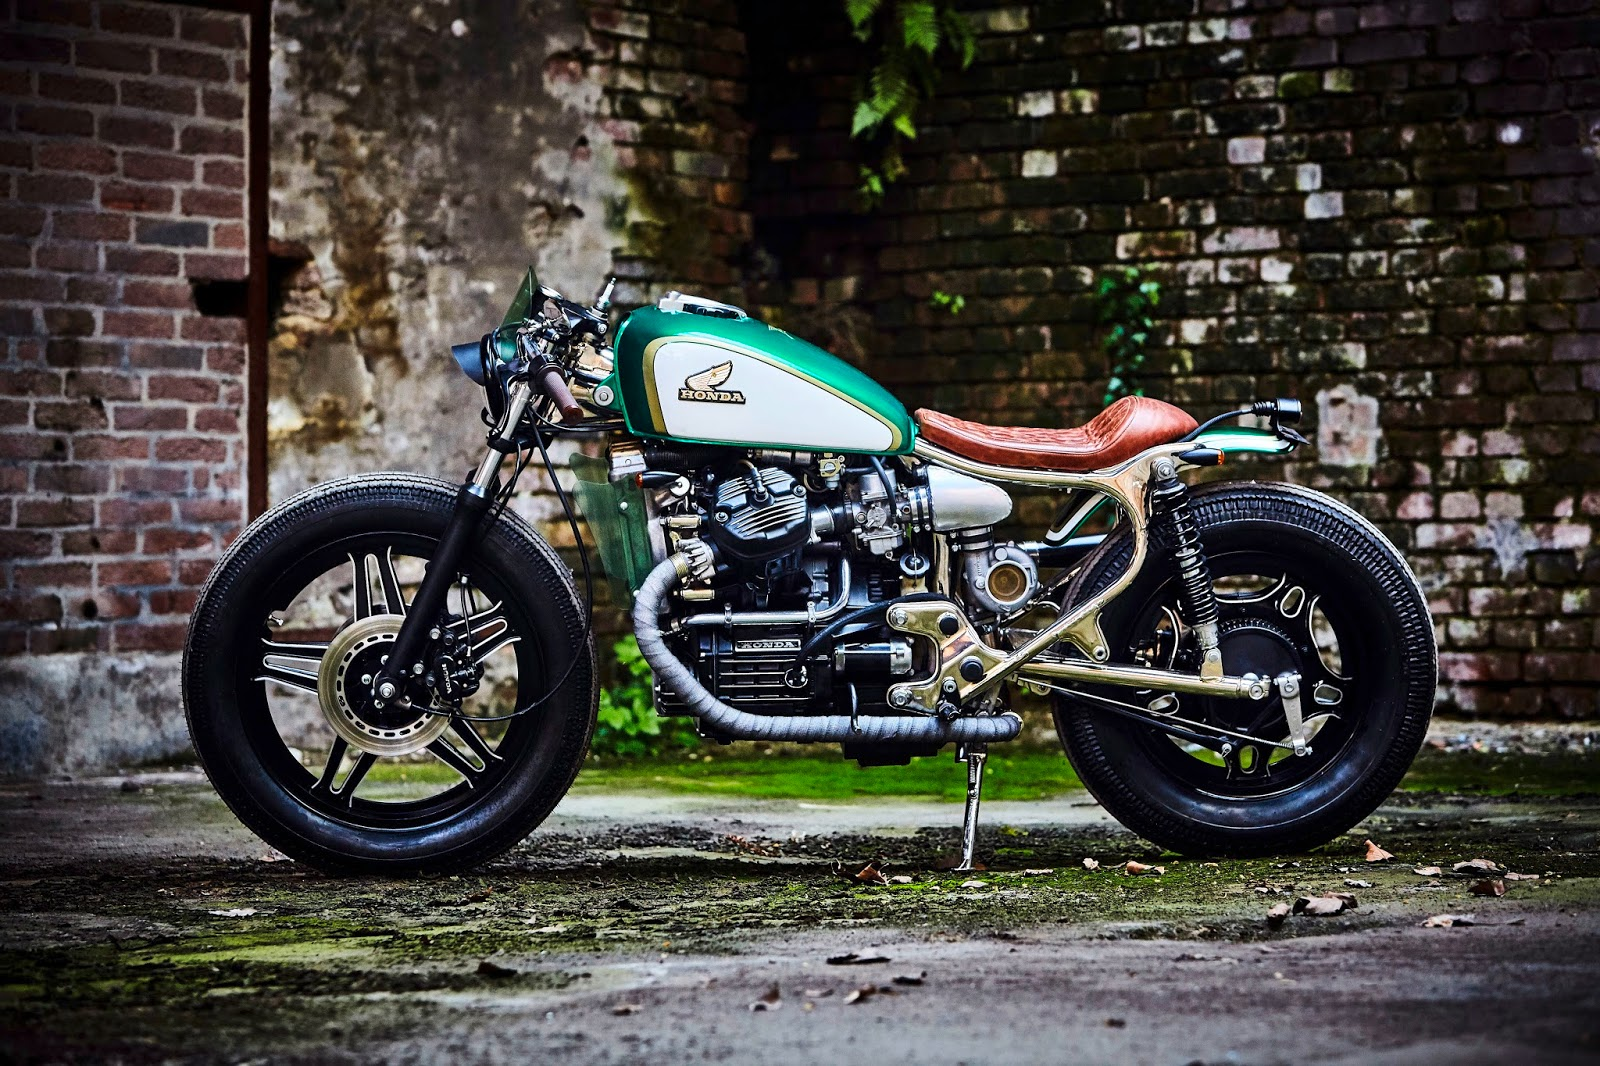 Honda Cx 500 Cafe Racer Von Kingston moreover Honda Cx500 Caferacer Achtig Project 2 further Cafe Racer likewise Expresso Turbo Honda Cx500 Cafe Racer Kingston Customs as well Honda Cx500 Cafe Racer Usata. on honda cx500 cafe racer by kingston custom